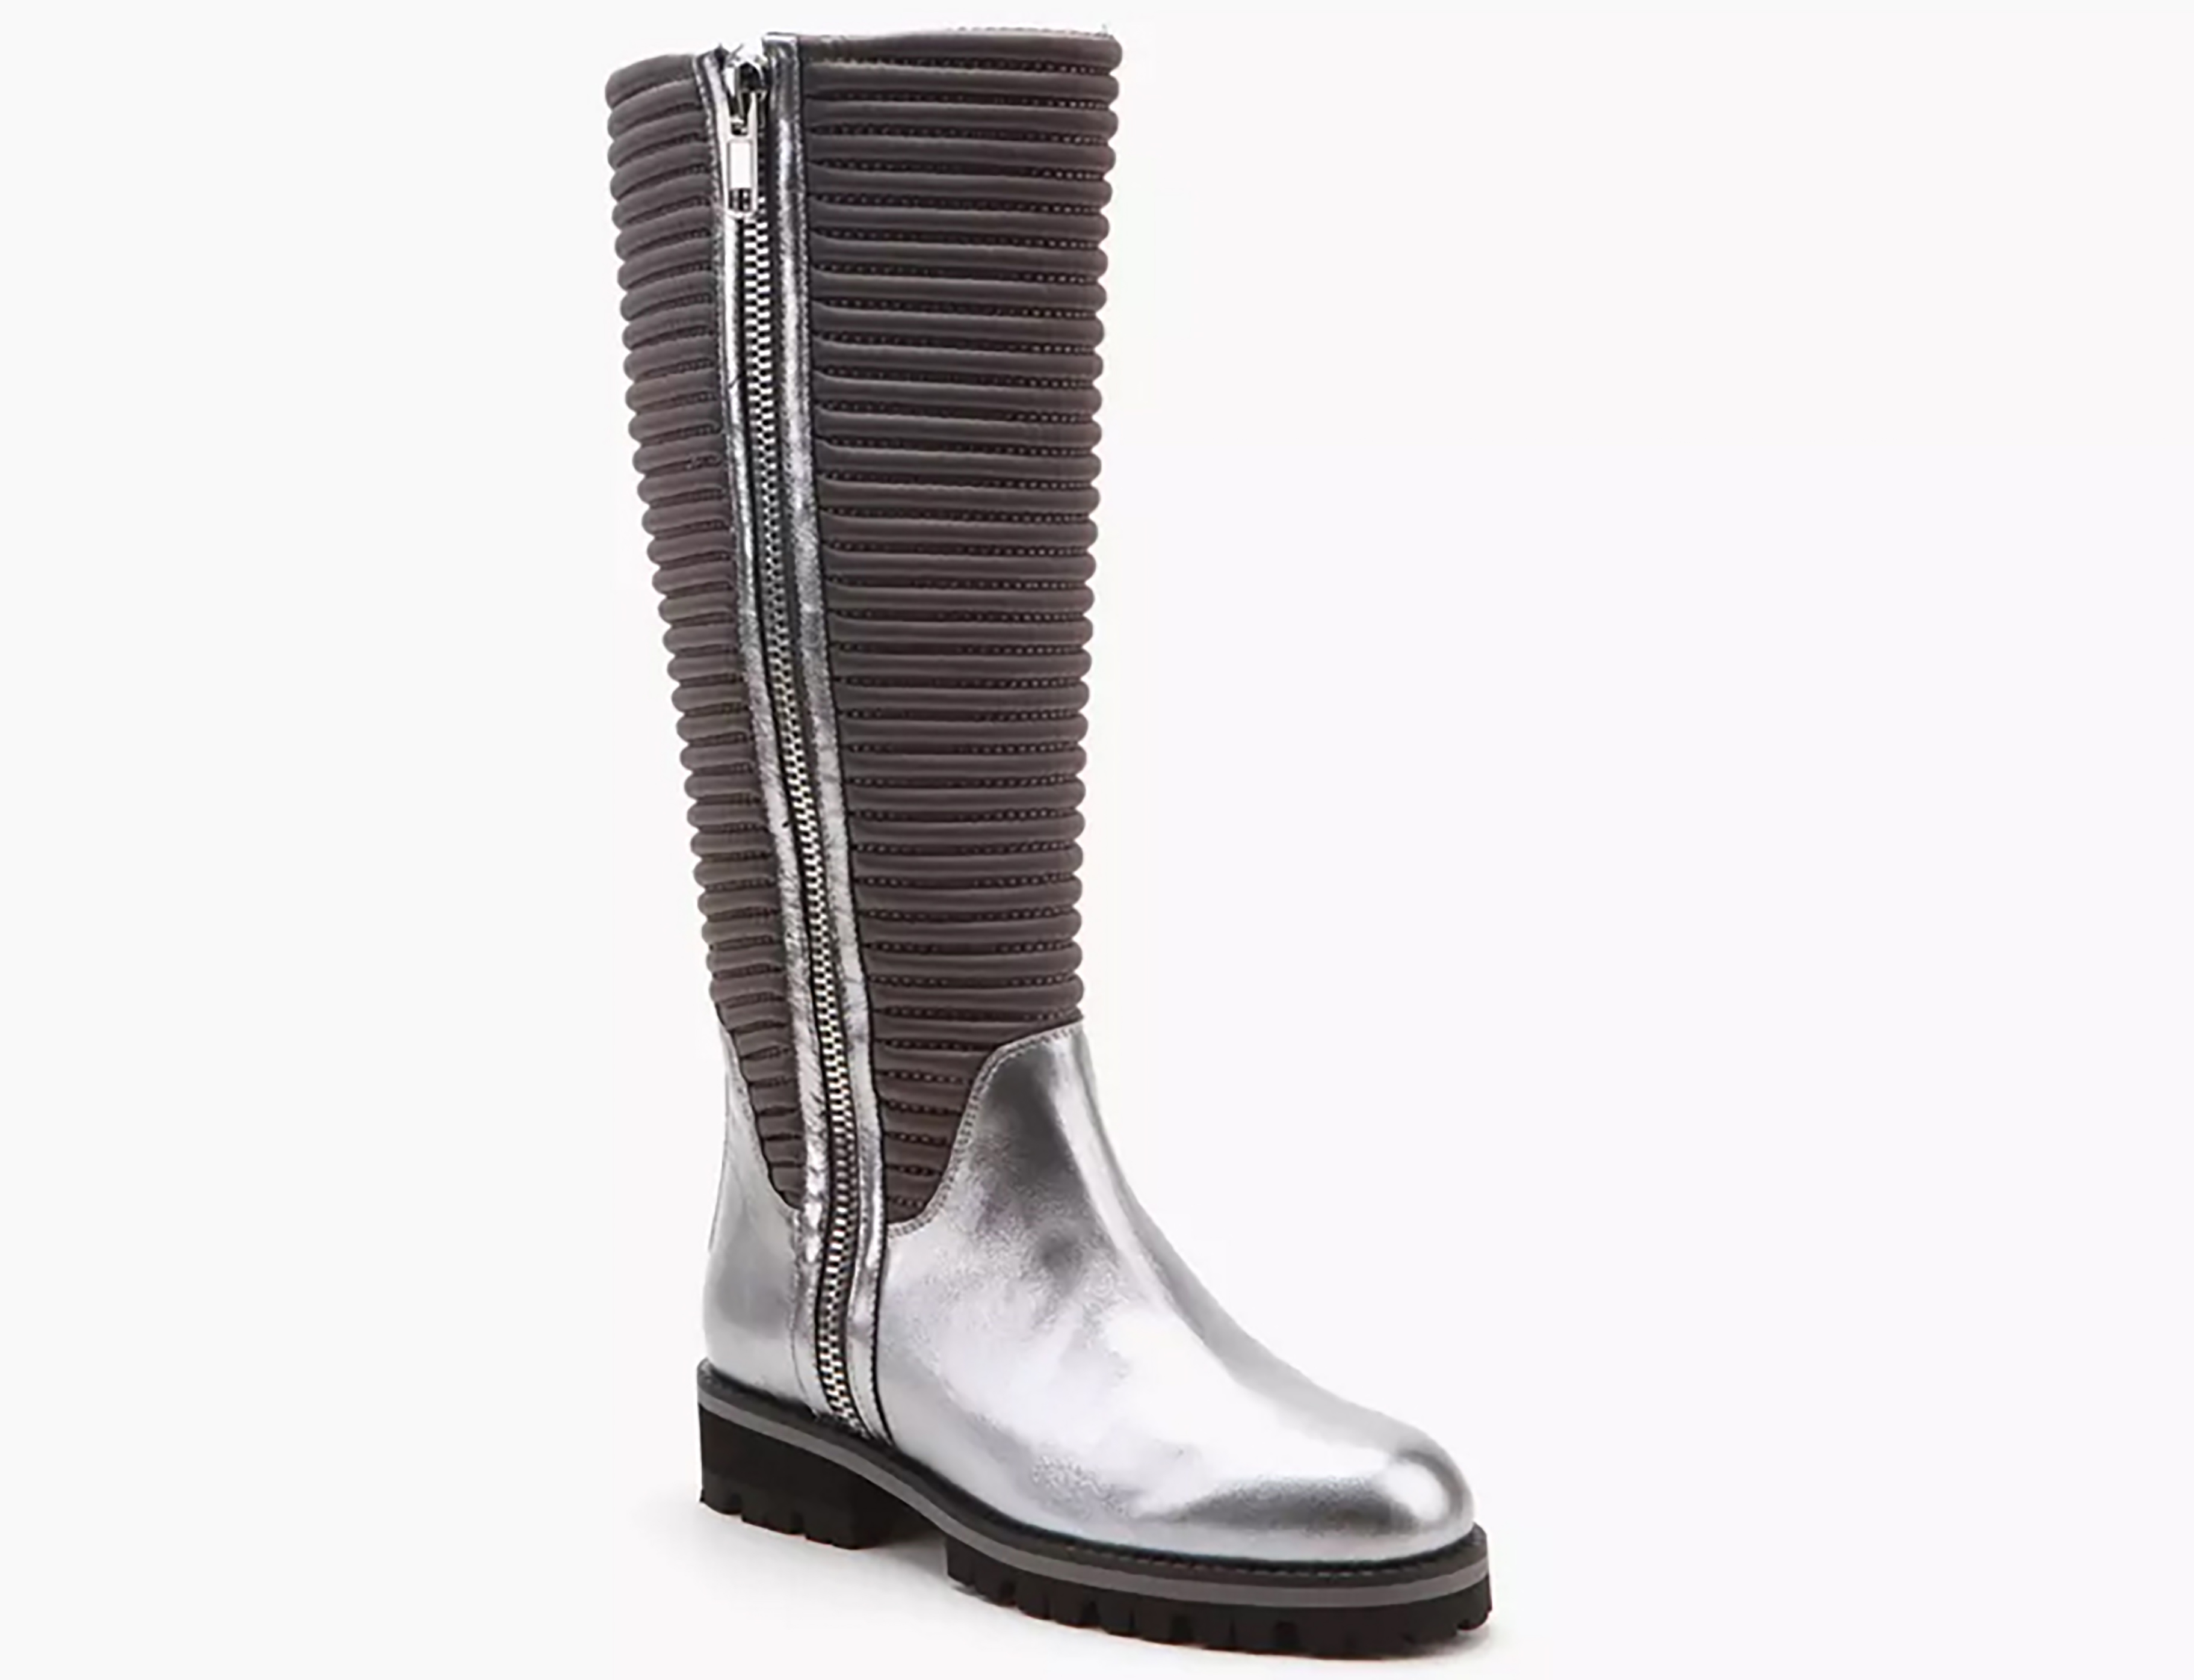 United Nude_Racer Boot_Steel